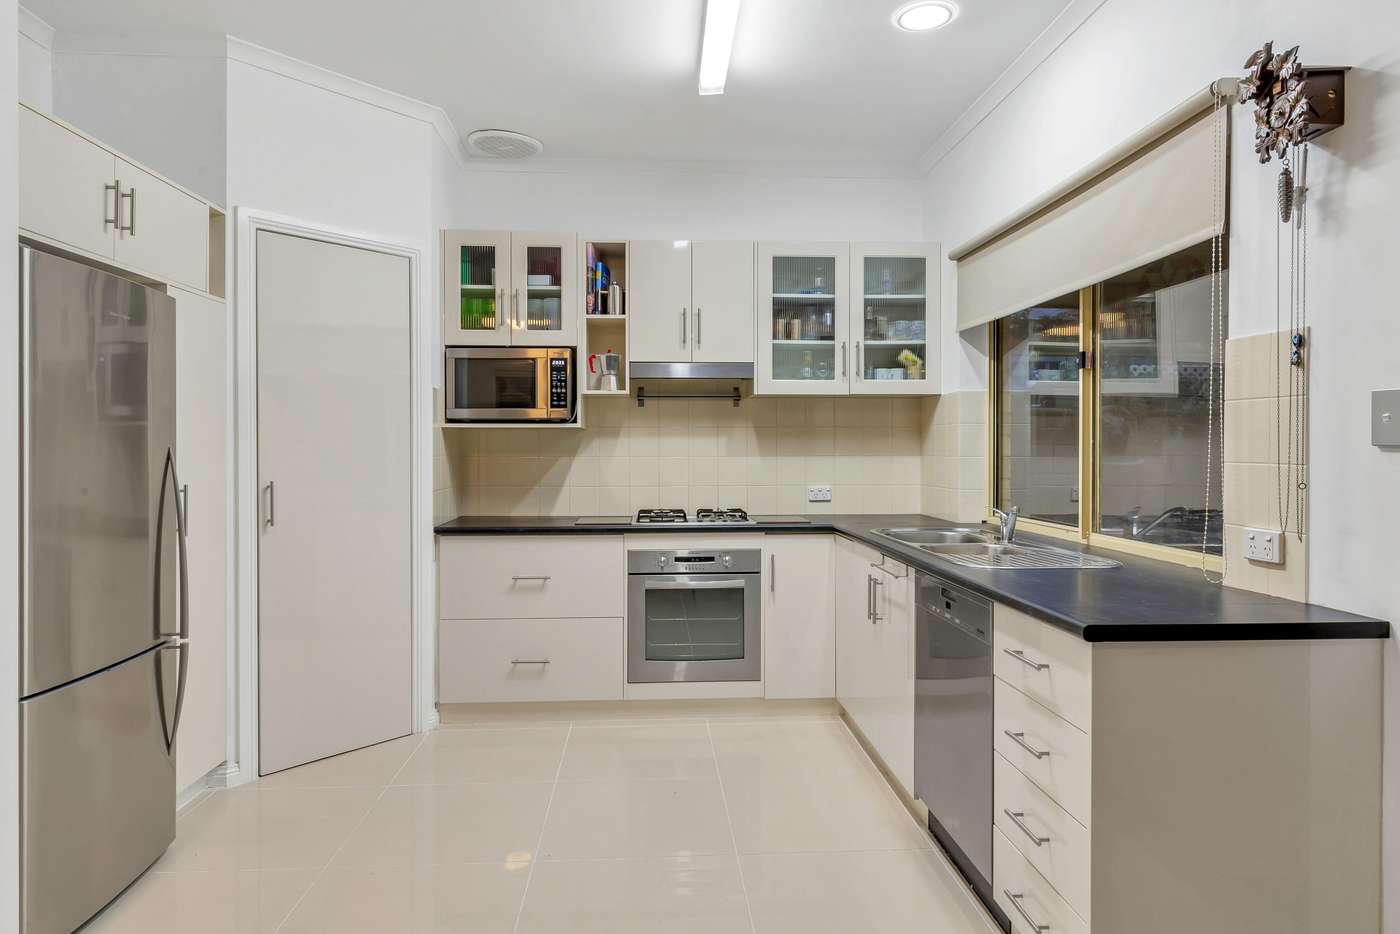 Seventh view of Homely house listing, 4 John Ridley Place, Ridleyton SA 5008